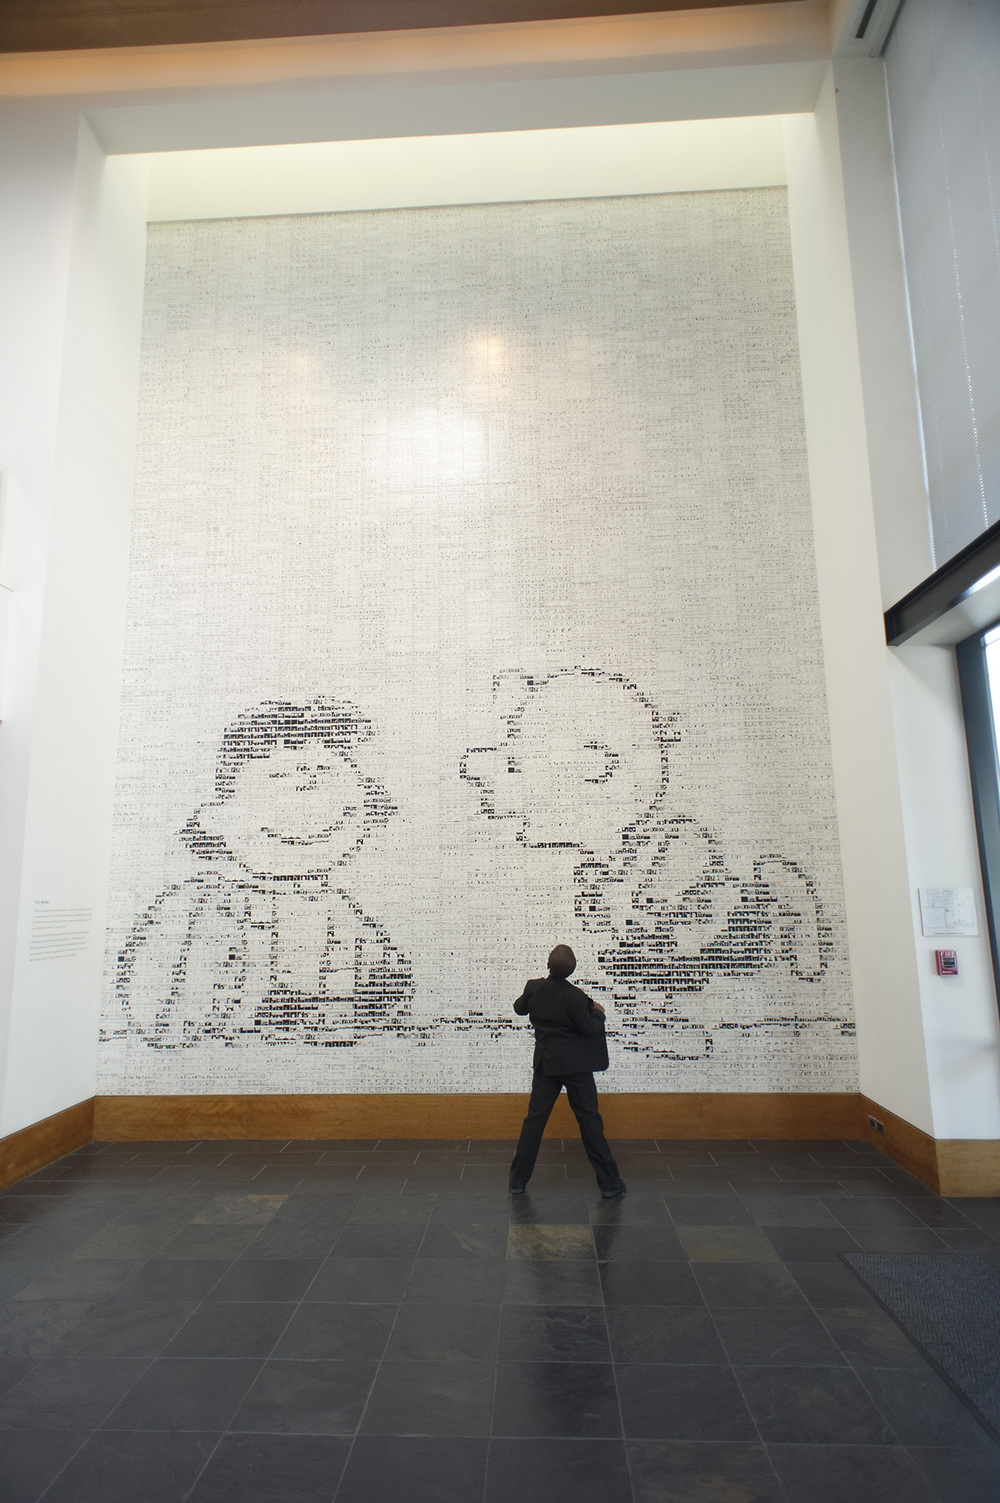 This mural is huge and amazing in person. It is made out of comic strips printed on horizontal ceramic tiles.